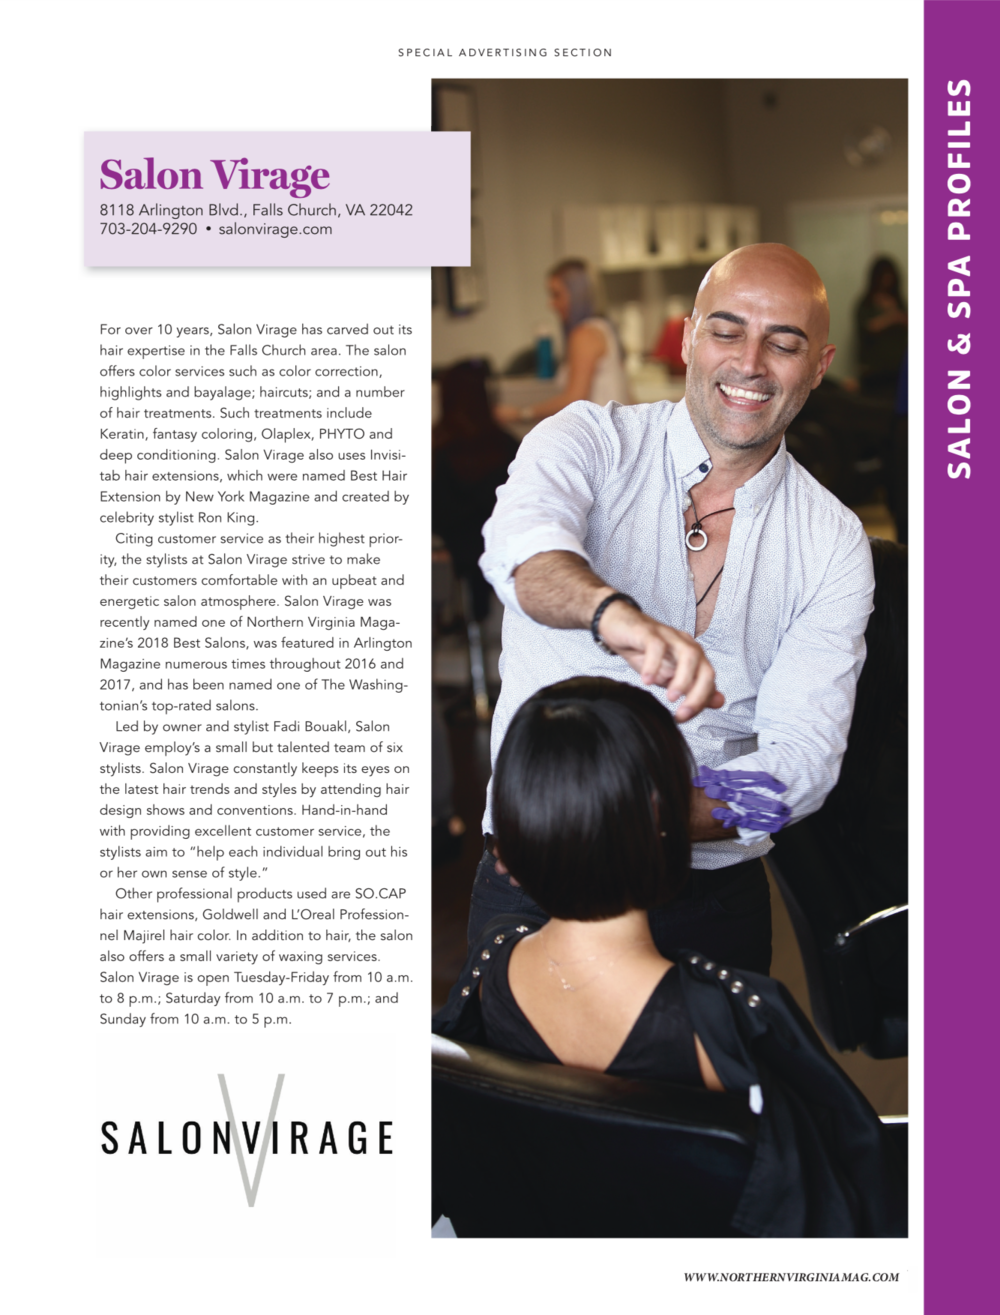 2018 Northern Virginia Magazines Best Salons Salon Virage